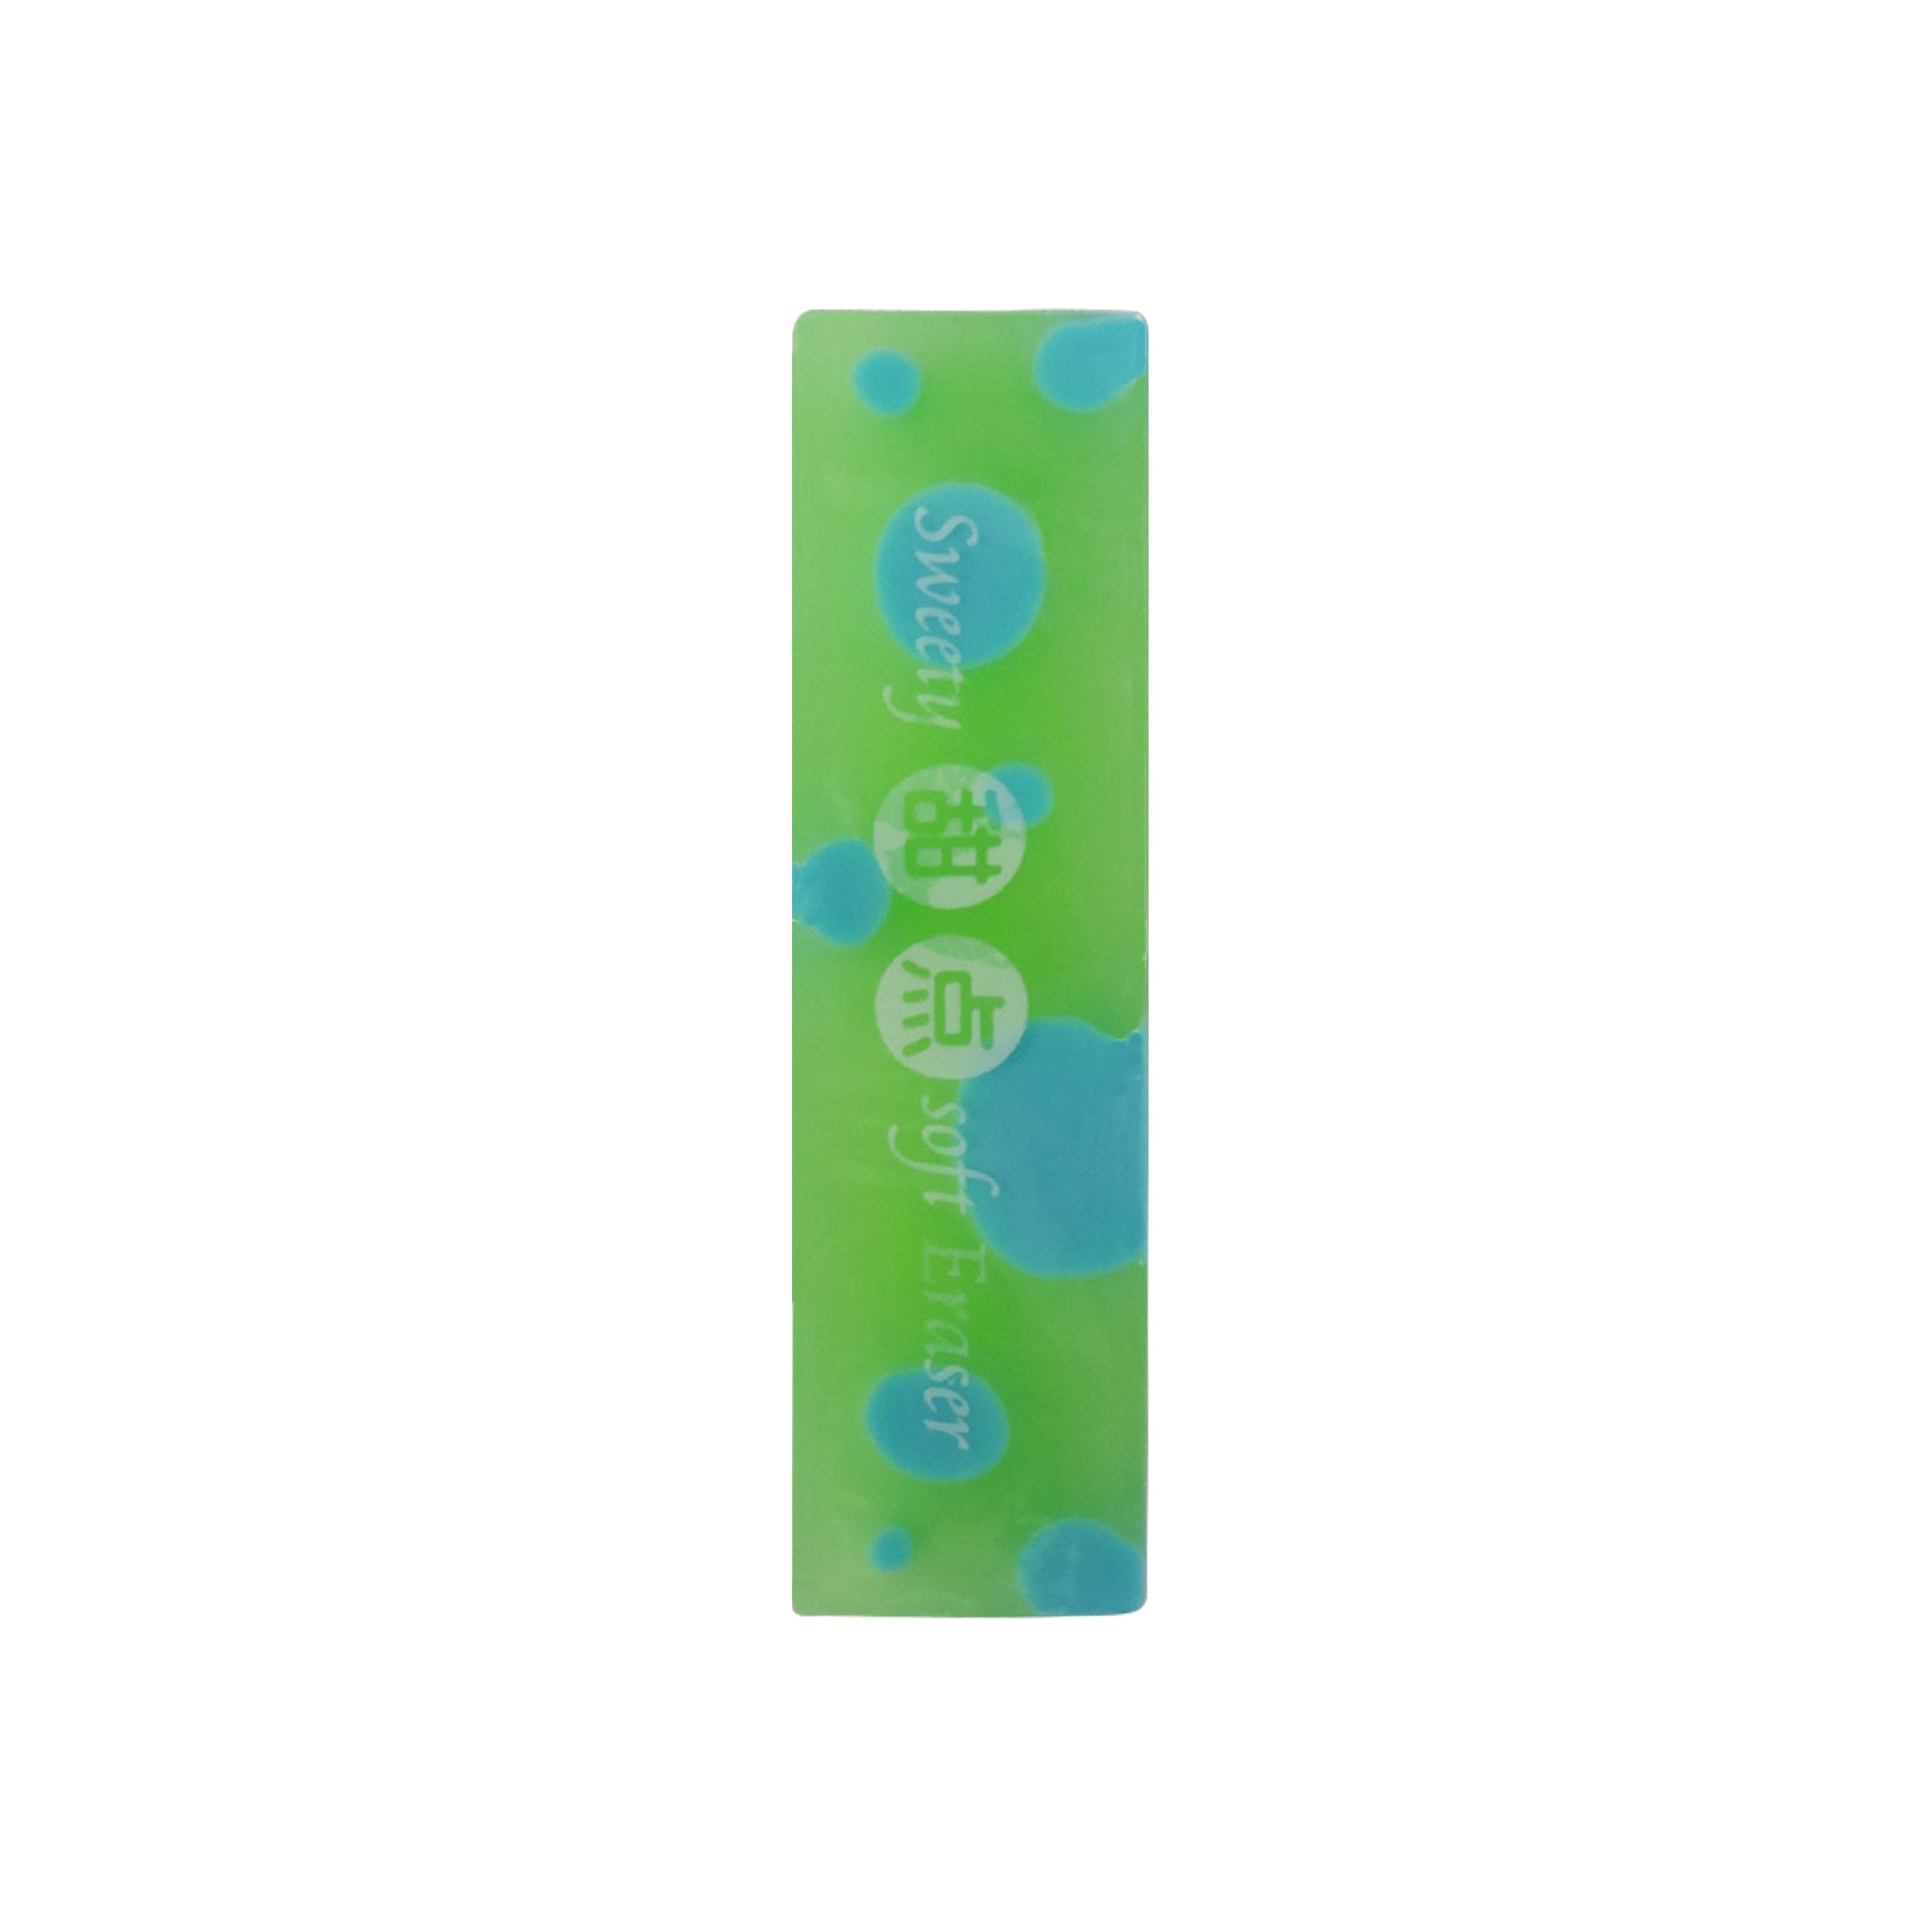 Jelly Eraser - Green